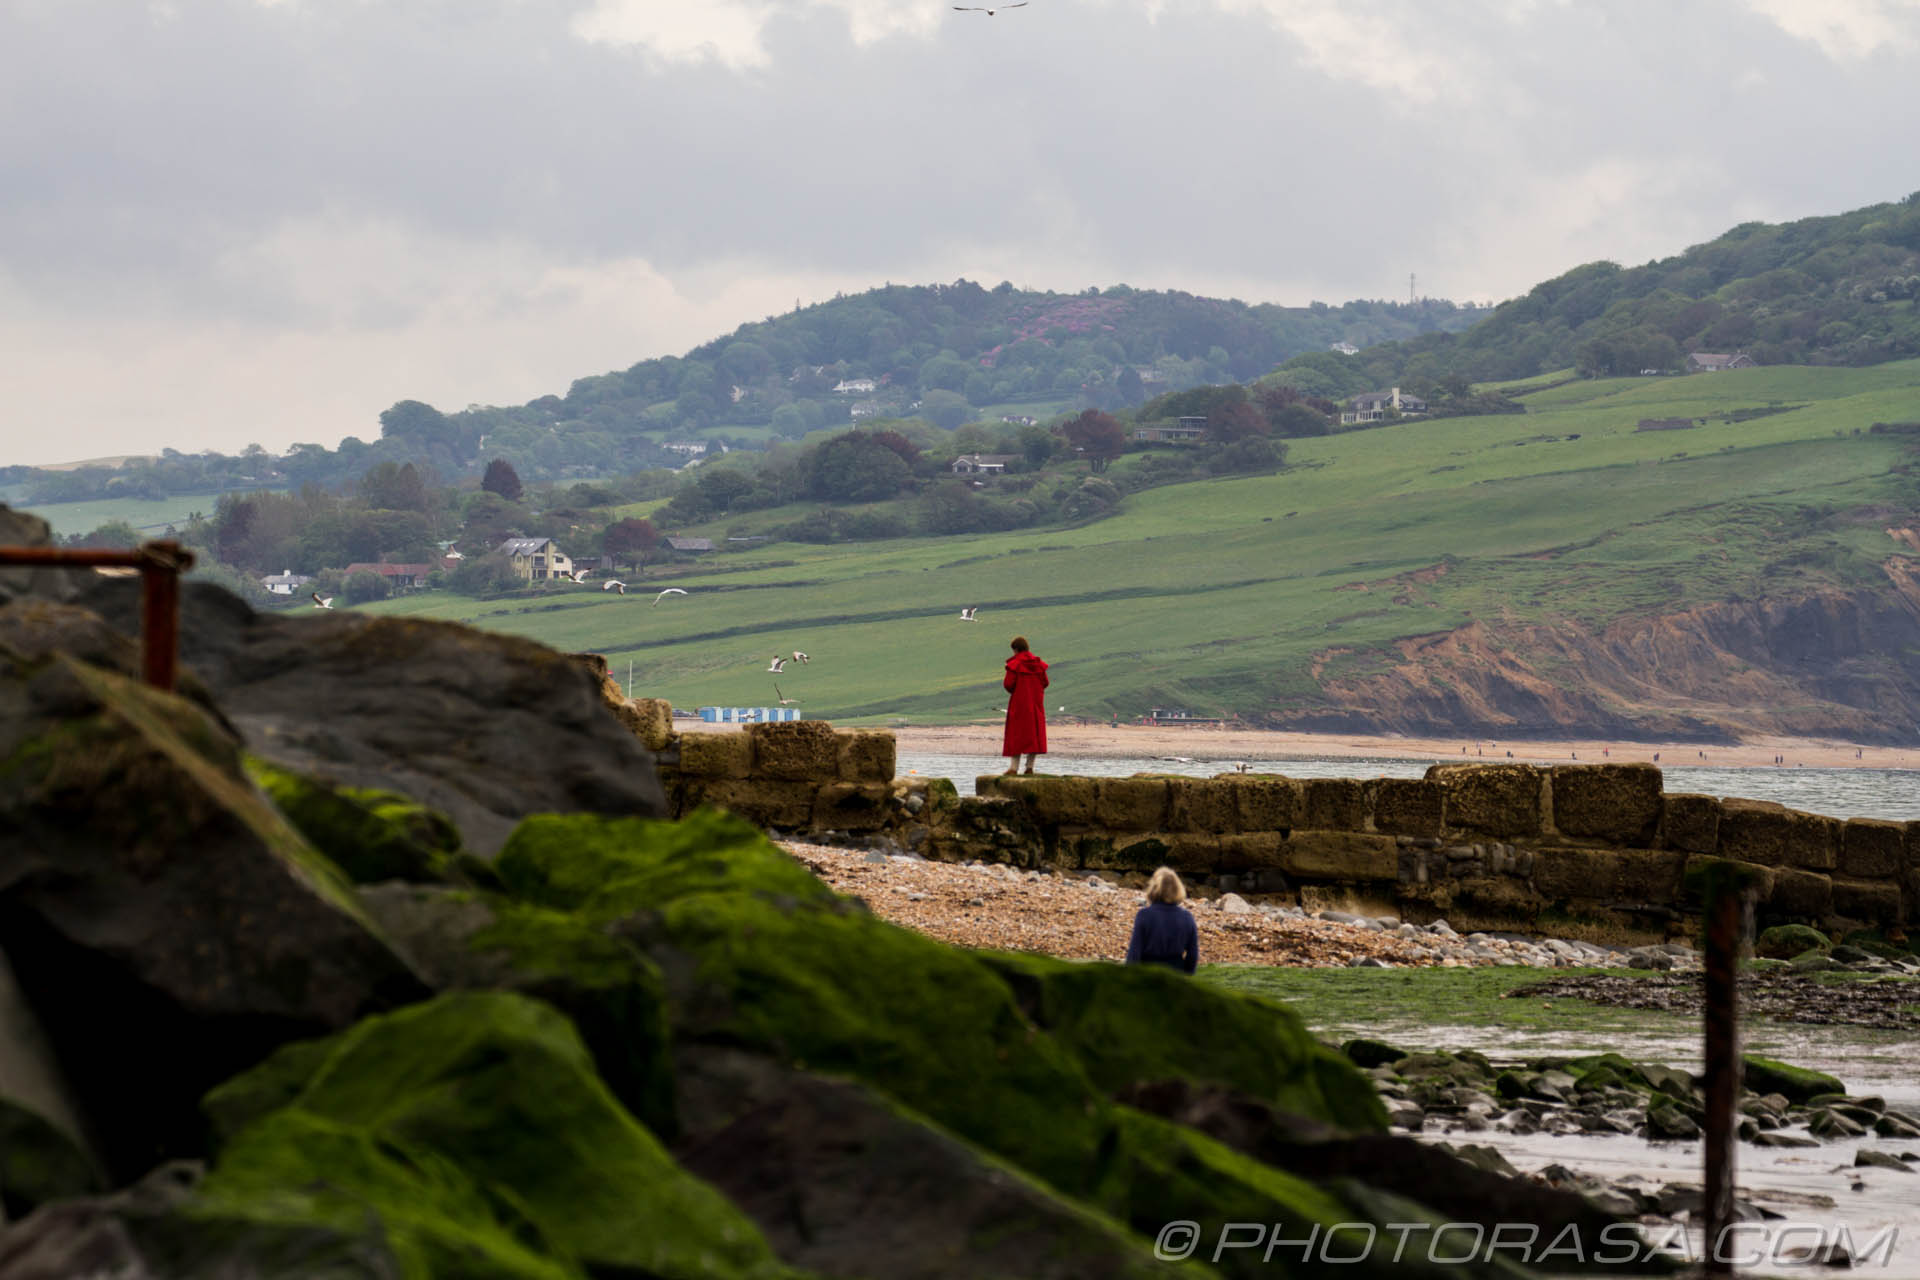 http://photorasa.com/jurassic-coast-lyme-regis/red-lady-by-the-rocks/